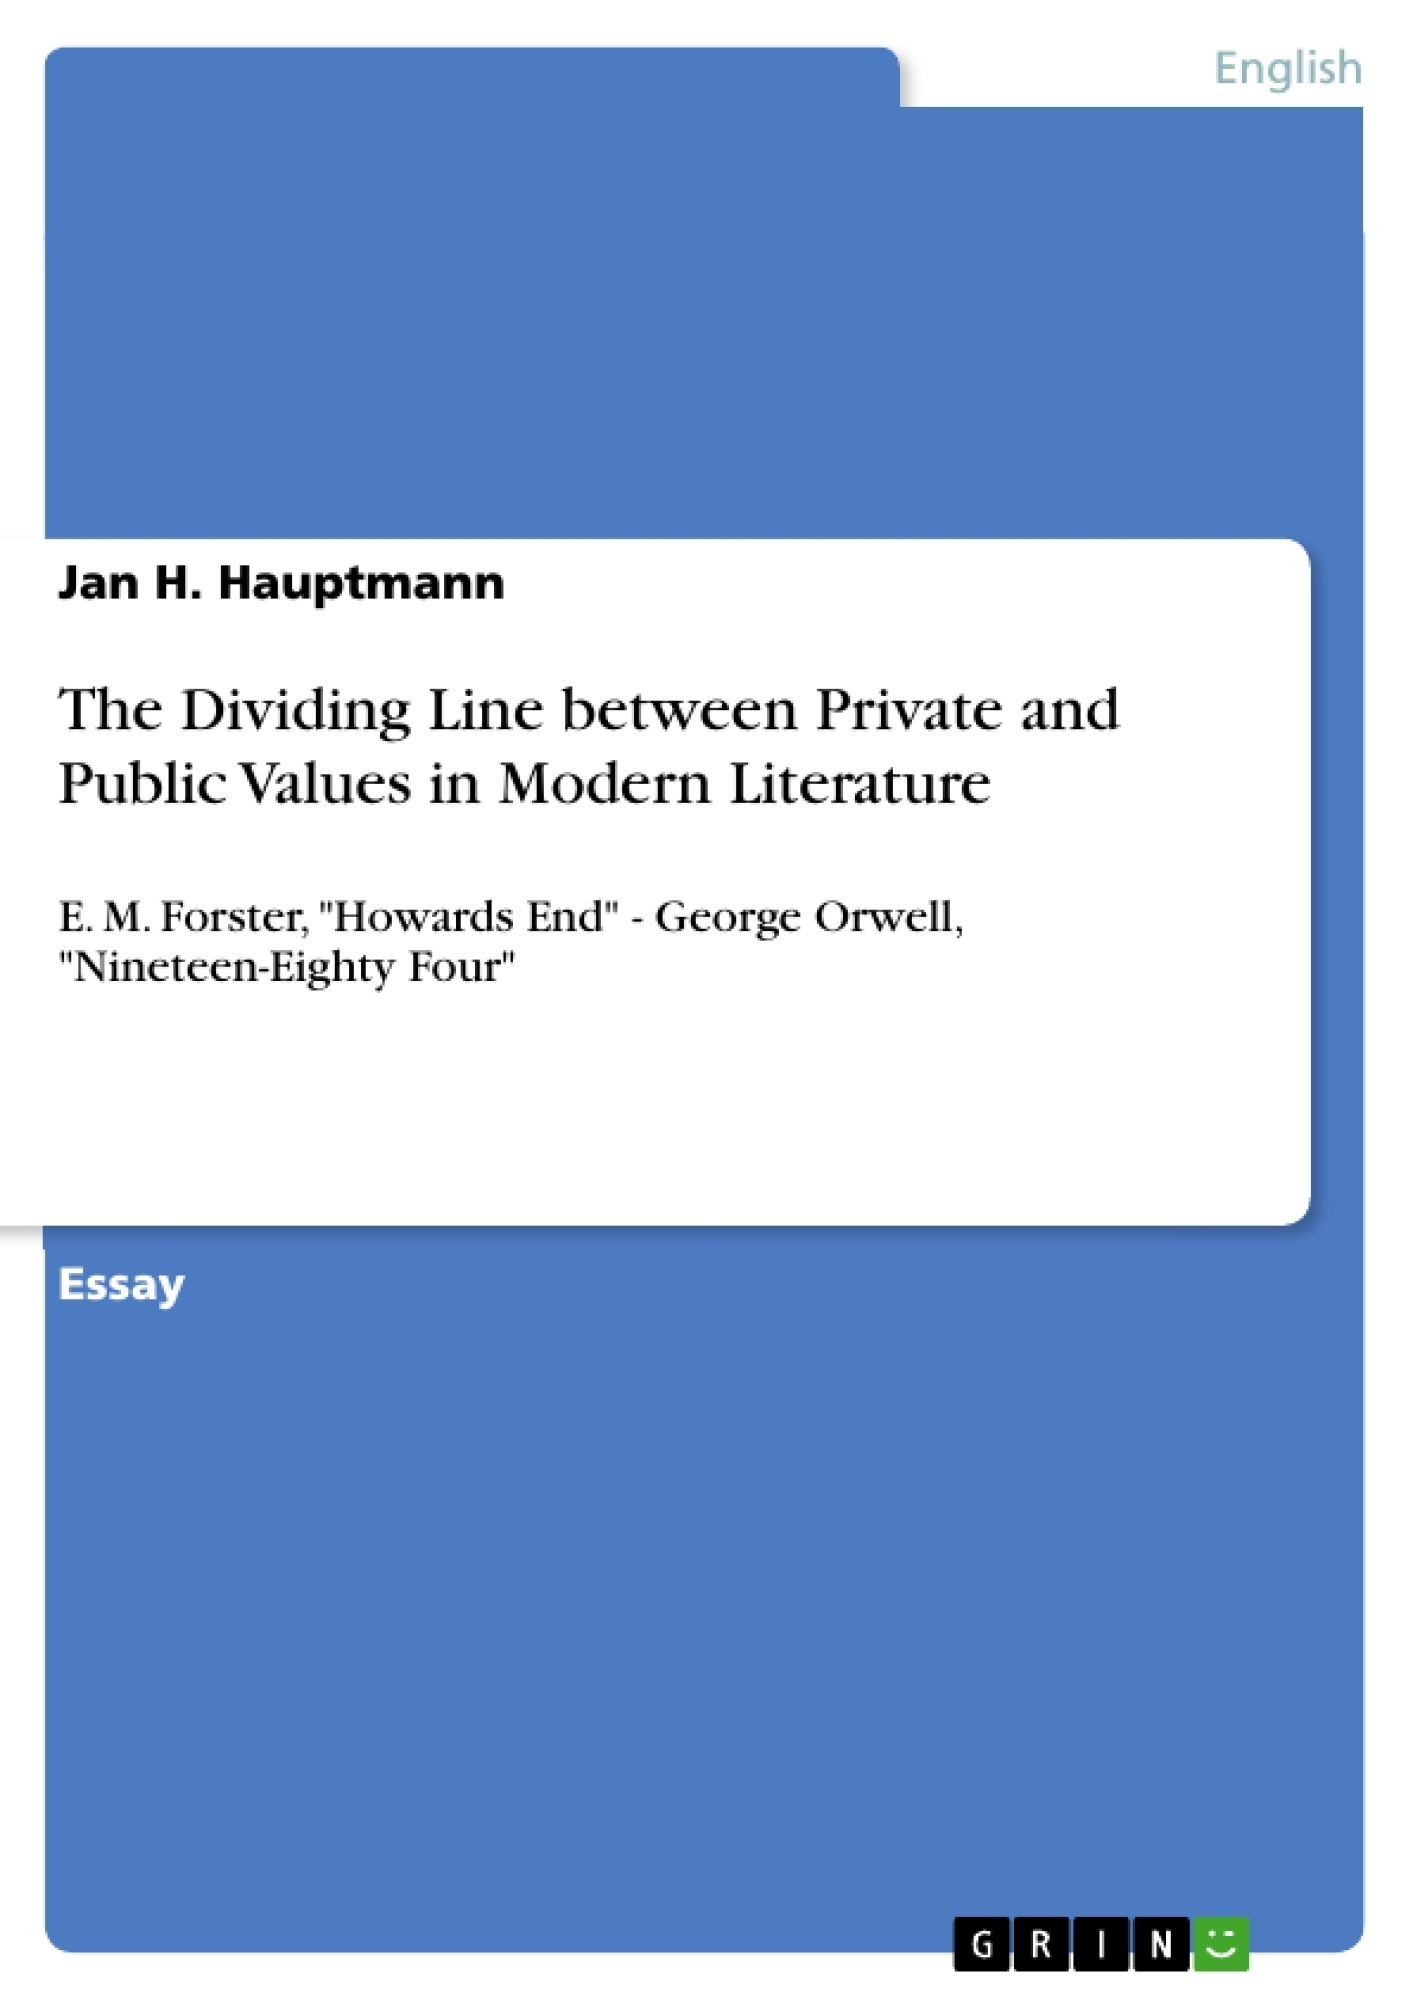 Title: The Dividing Line between Private and Public Values in Modern Literature